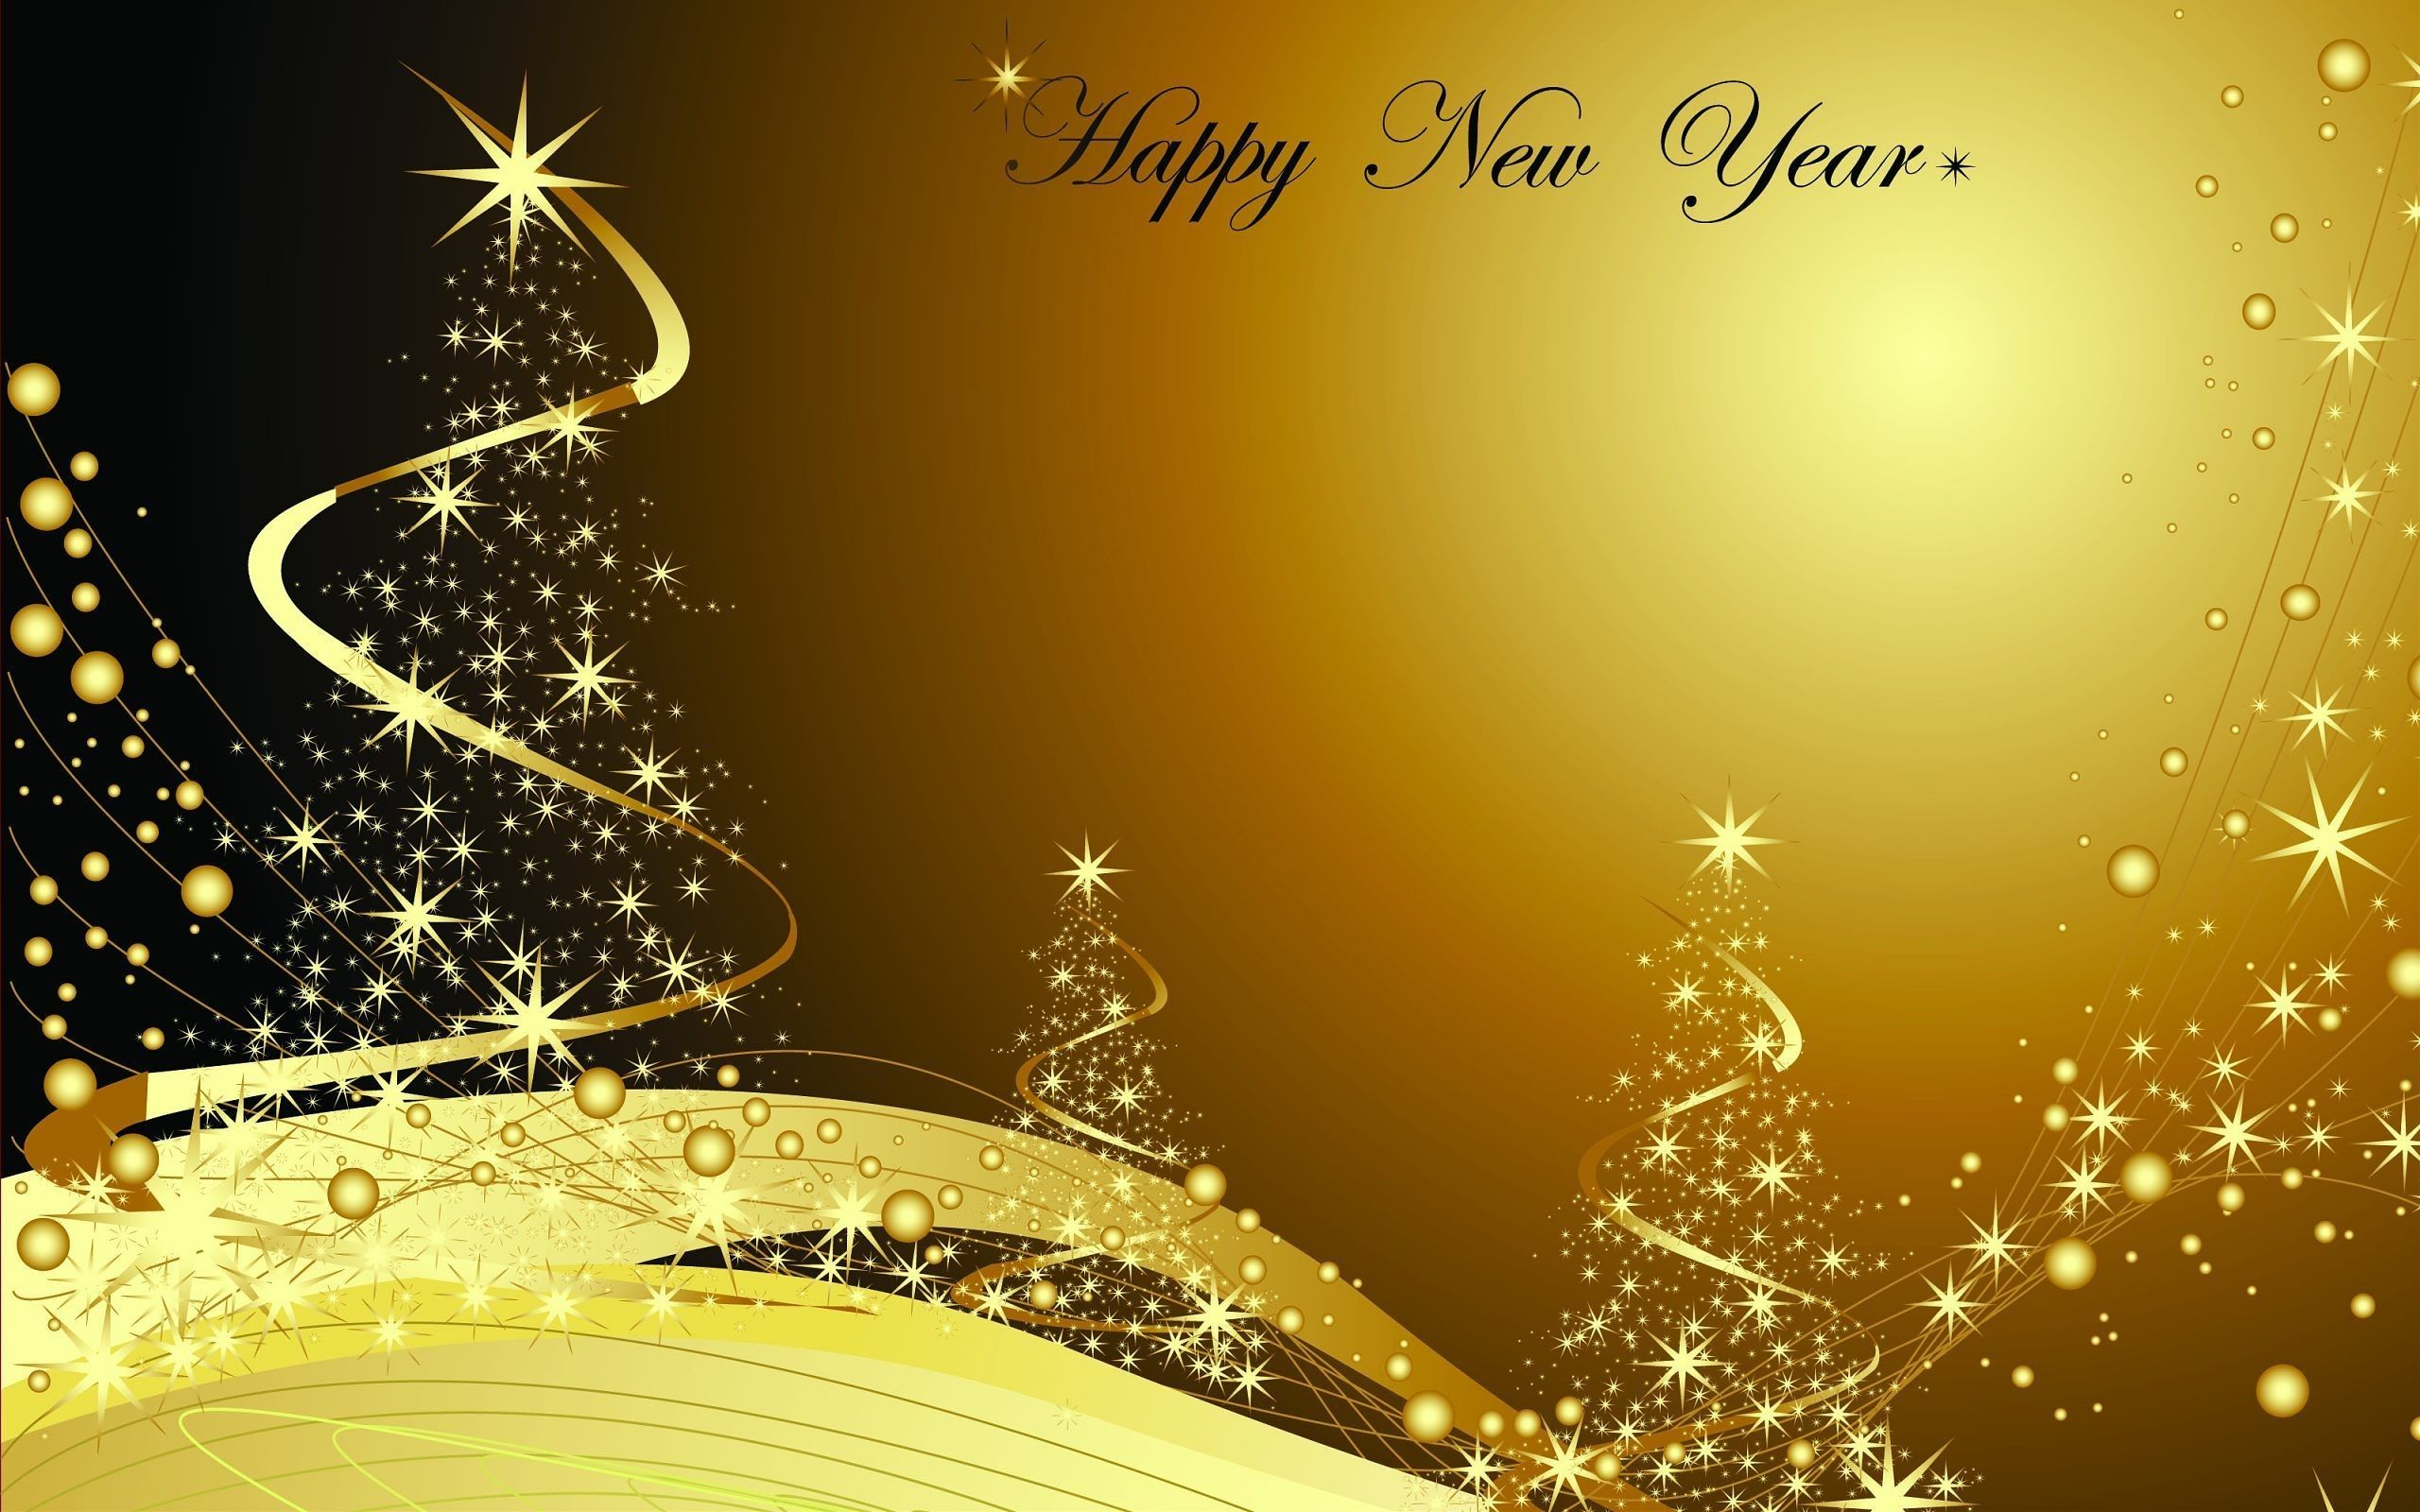 Happy New Year 2016 Hindi Sms Shayari Messages Wishes Images Hd